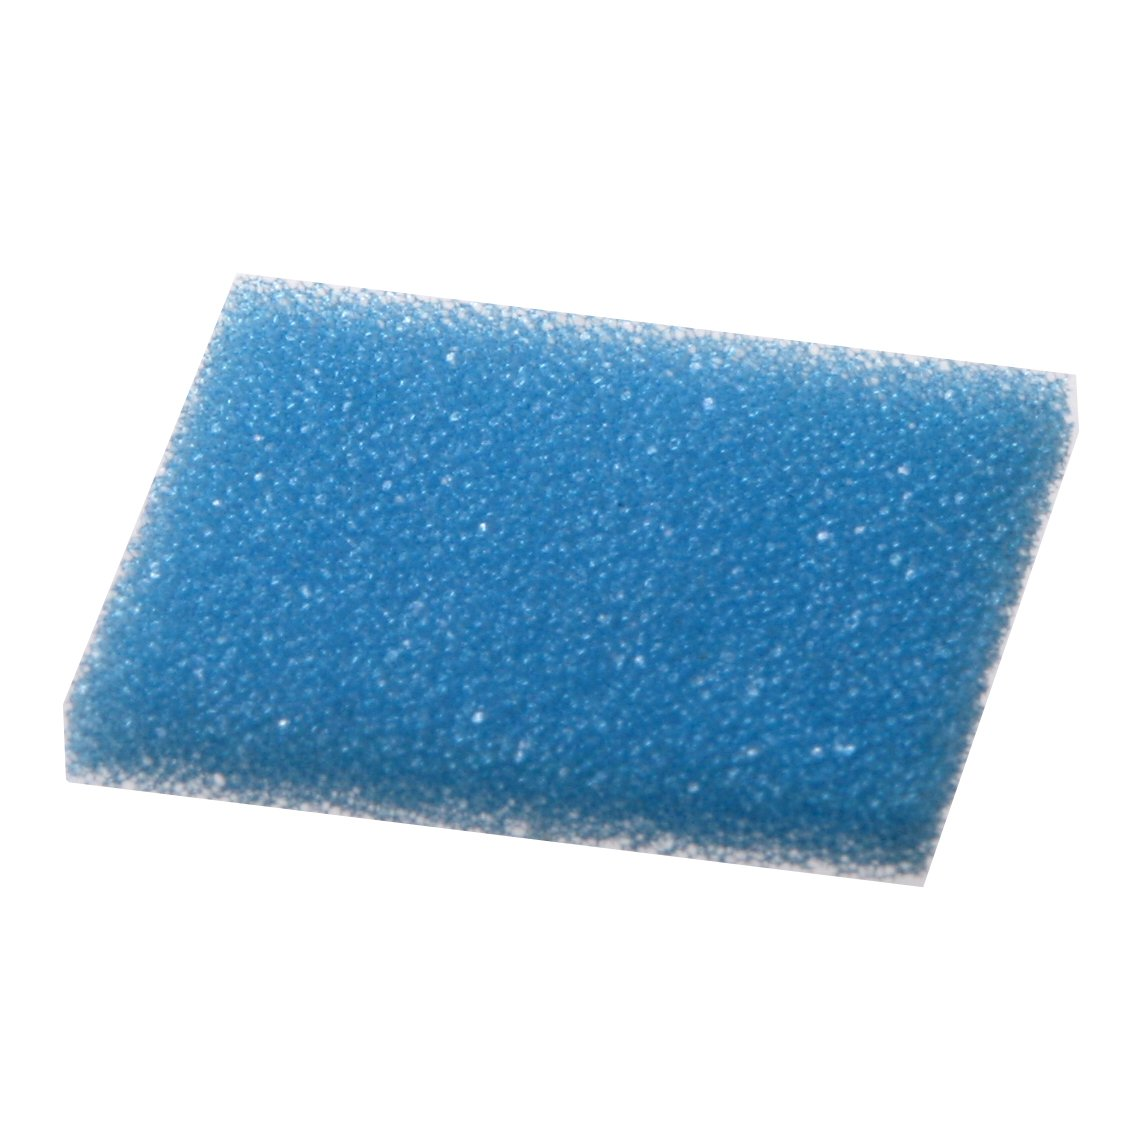 Bio Plas 6120 Blue Polyester Plastic Foam Biopsy Pad for 1 x 1-1/4'' Tissue Embedding Cassettes (Pack of 1000)